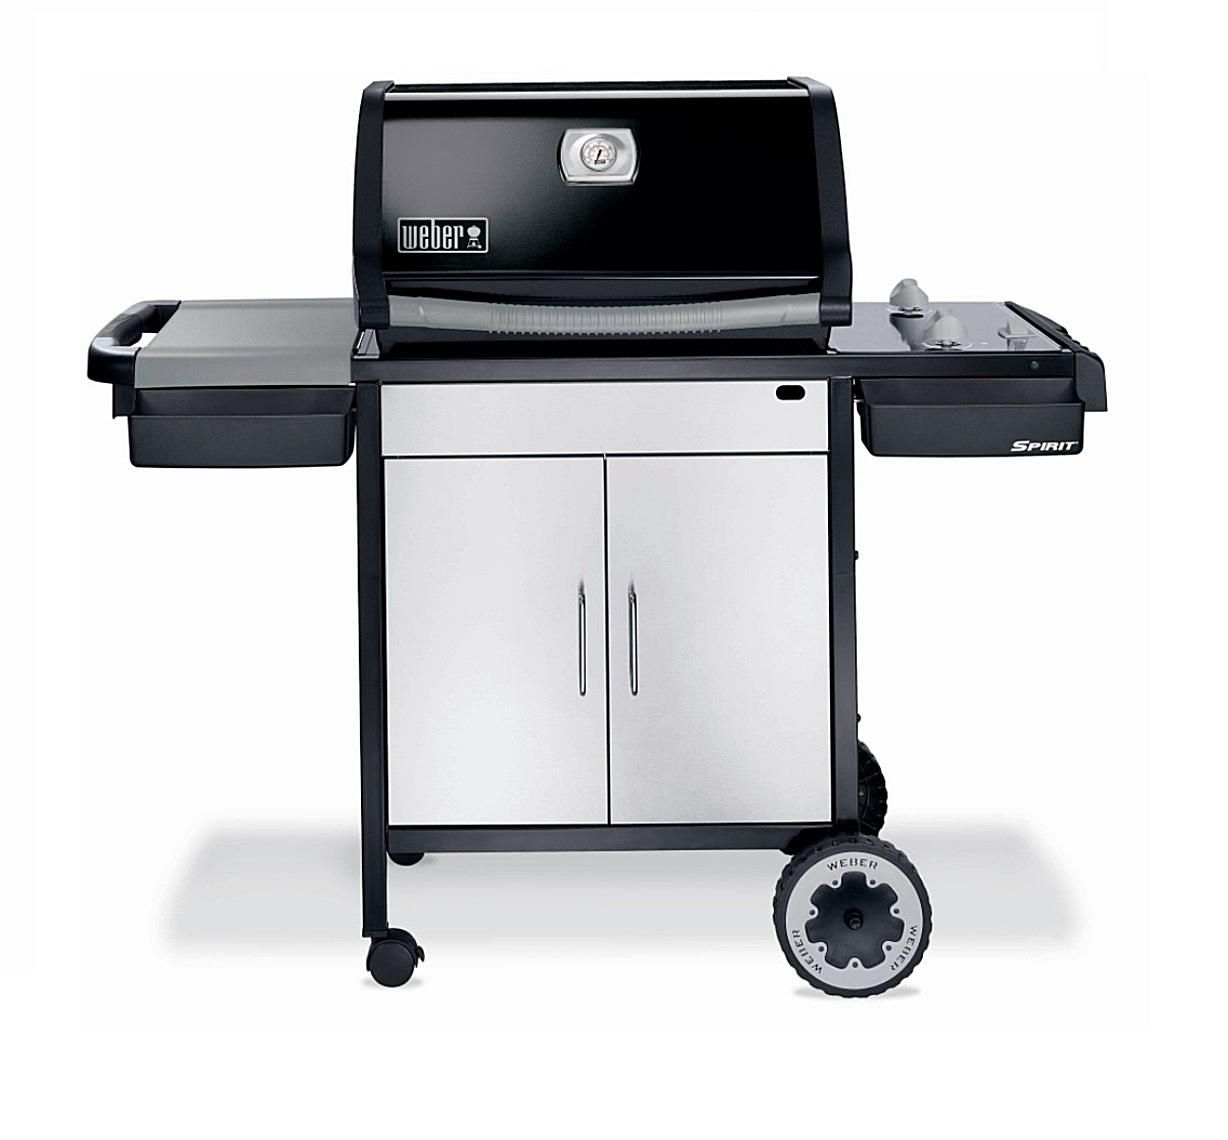 Weber spirit e 210 gas grill review Weber exterior grill cleaner